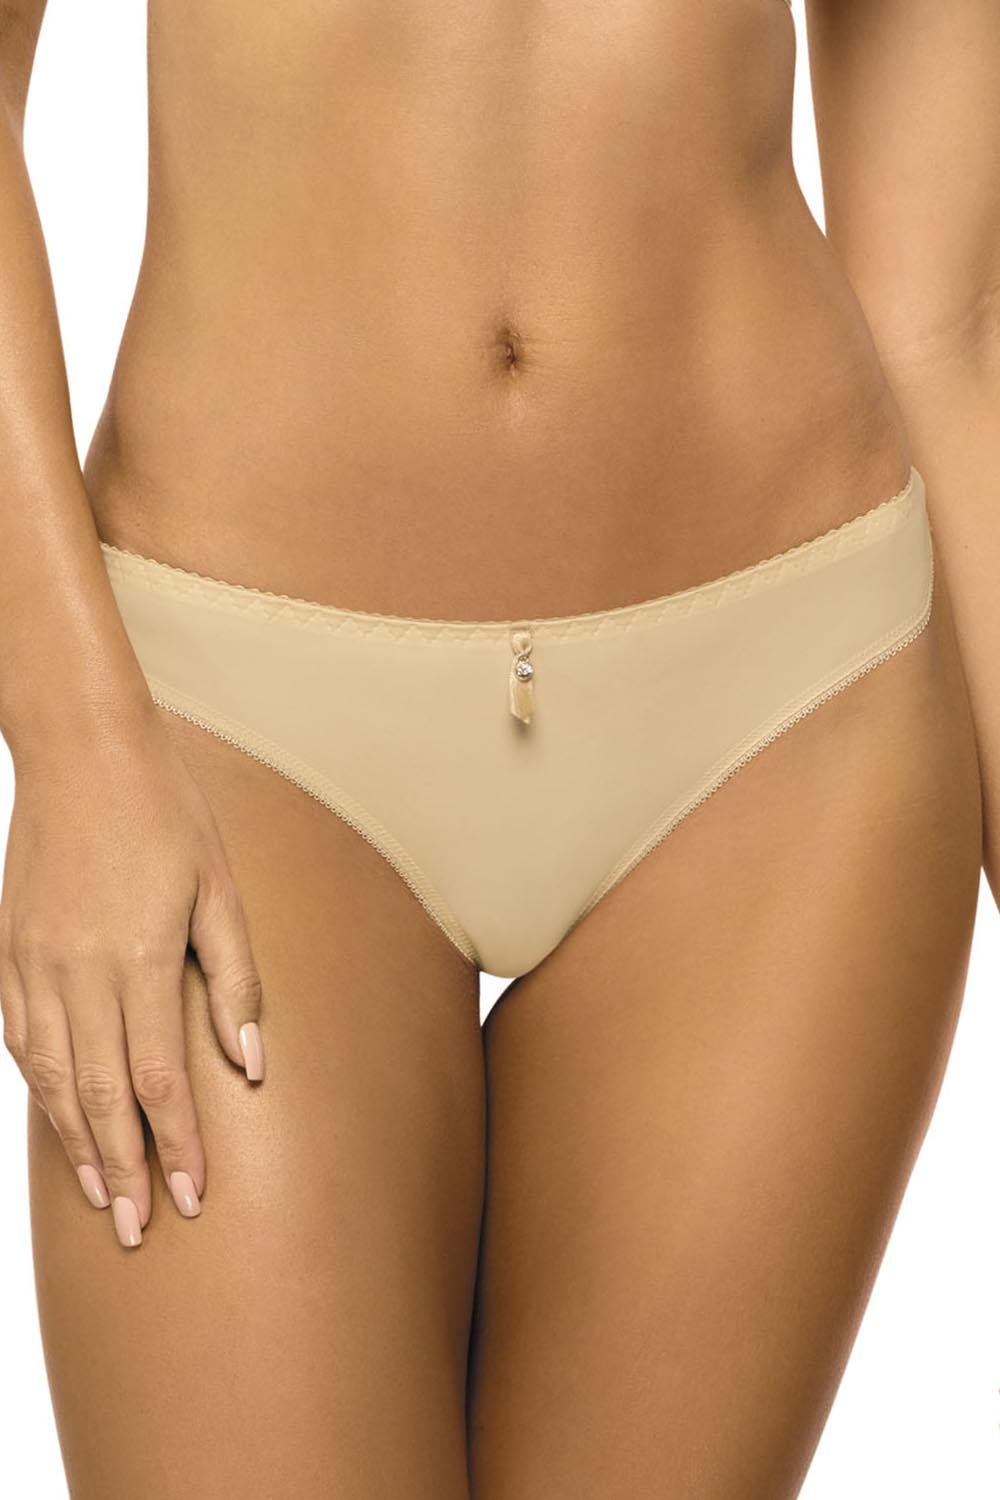 Tanga model 113749 Gorteks 40